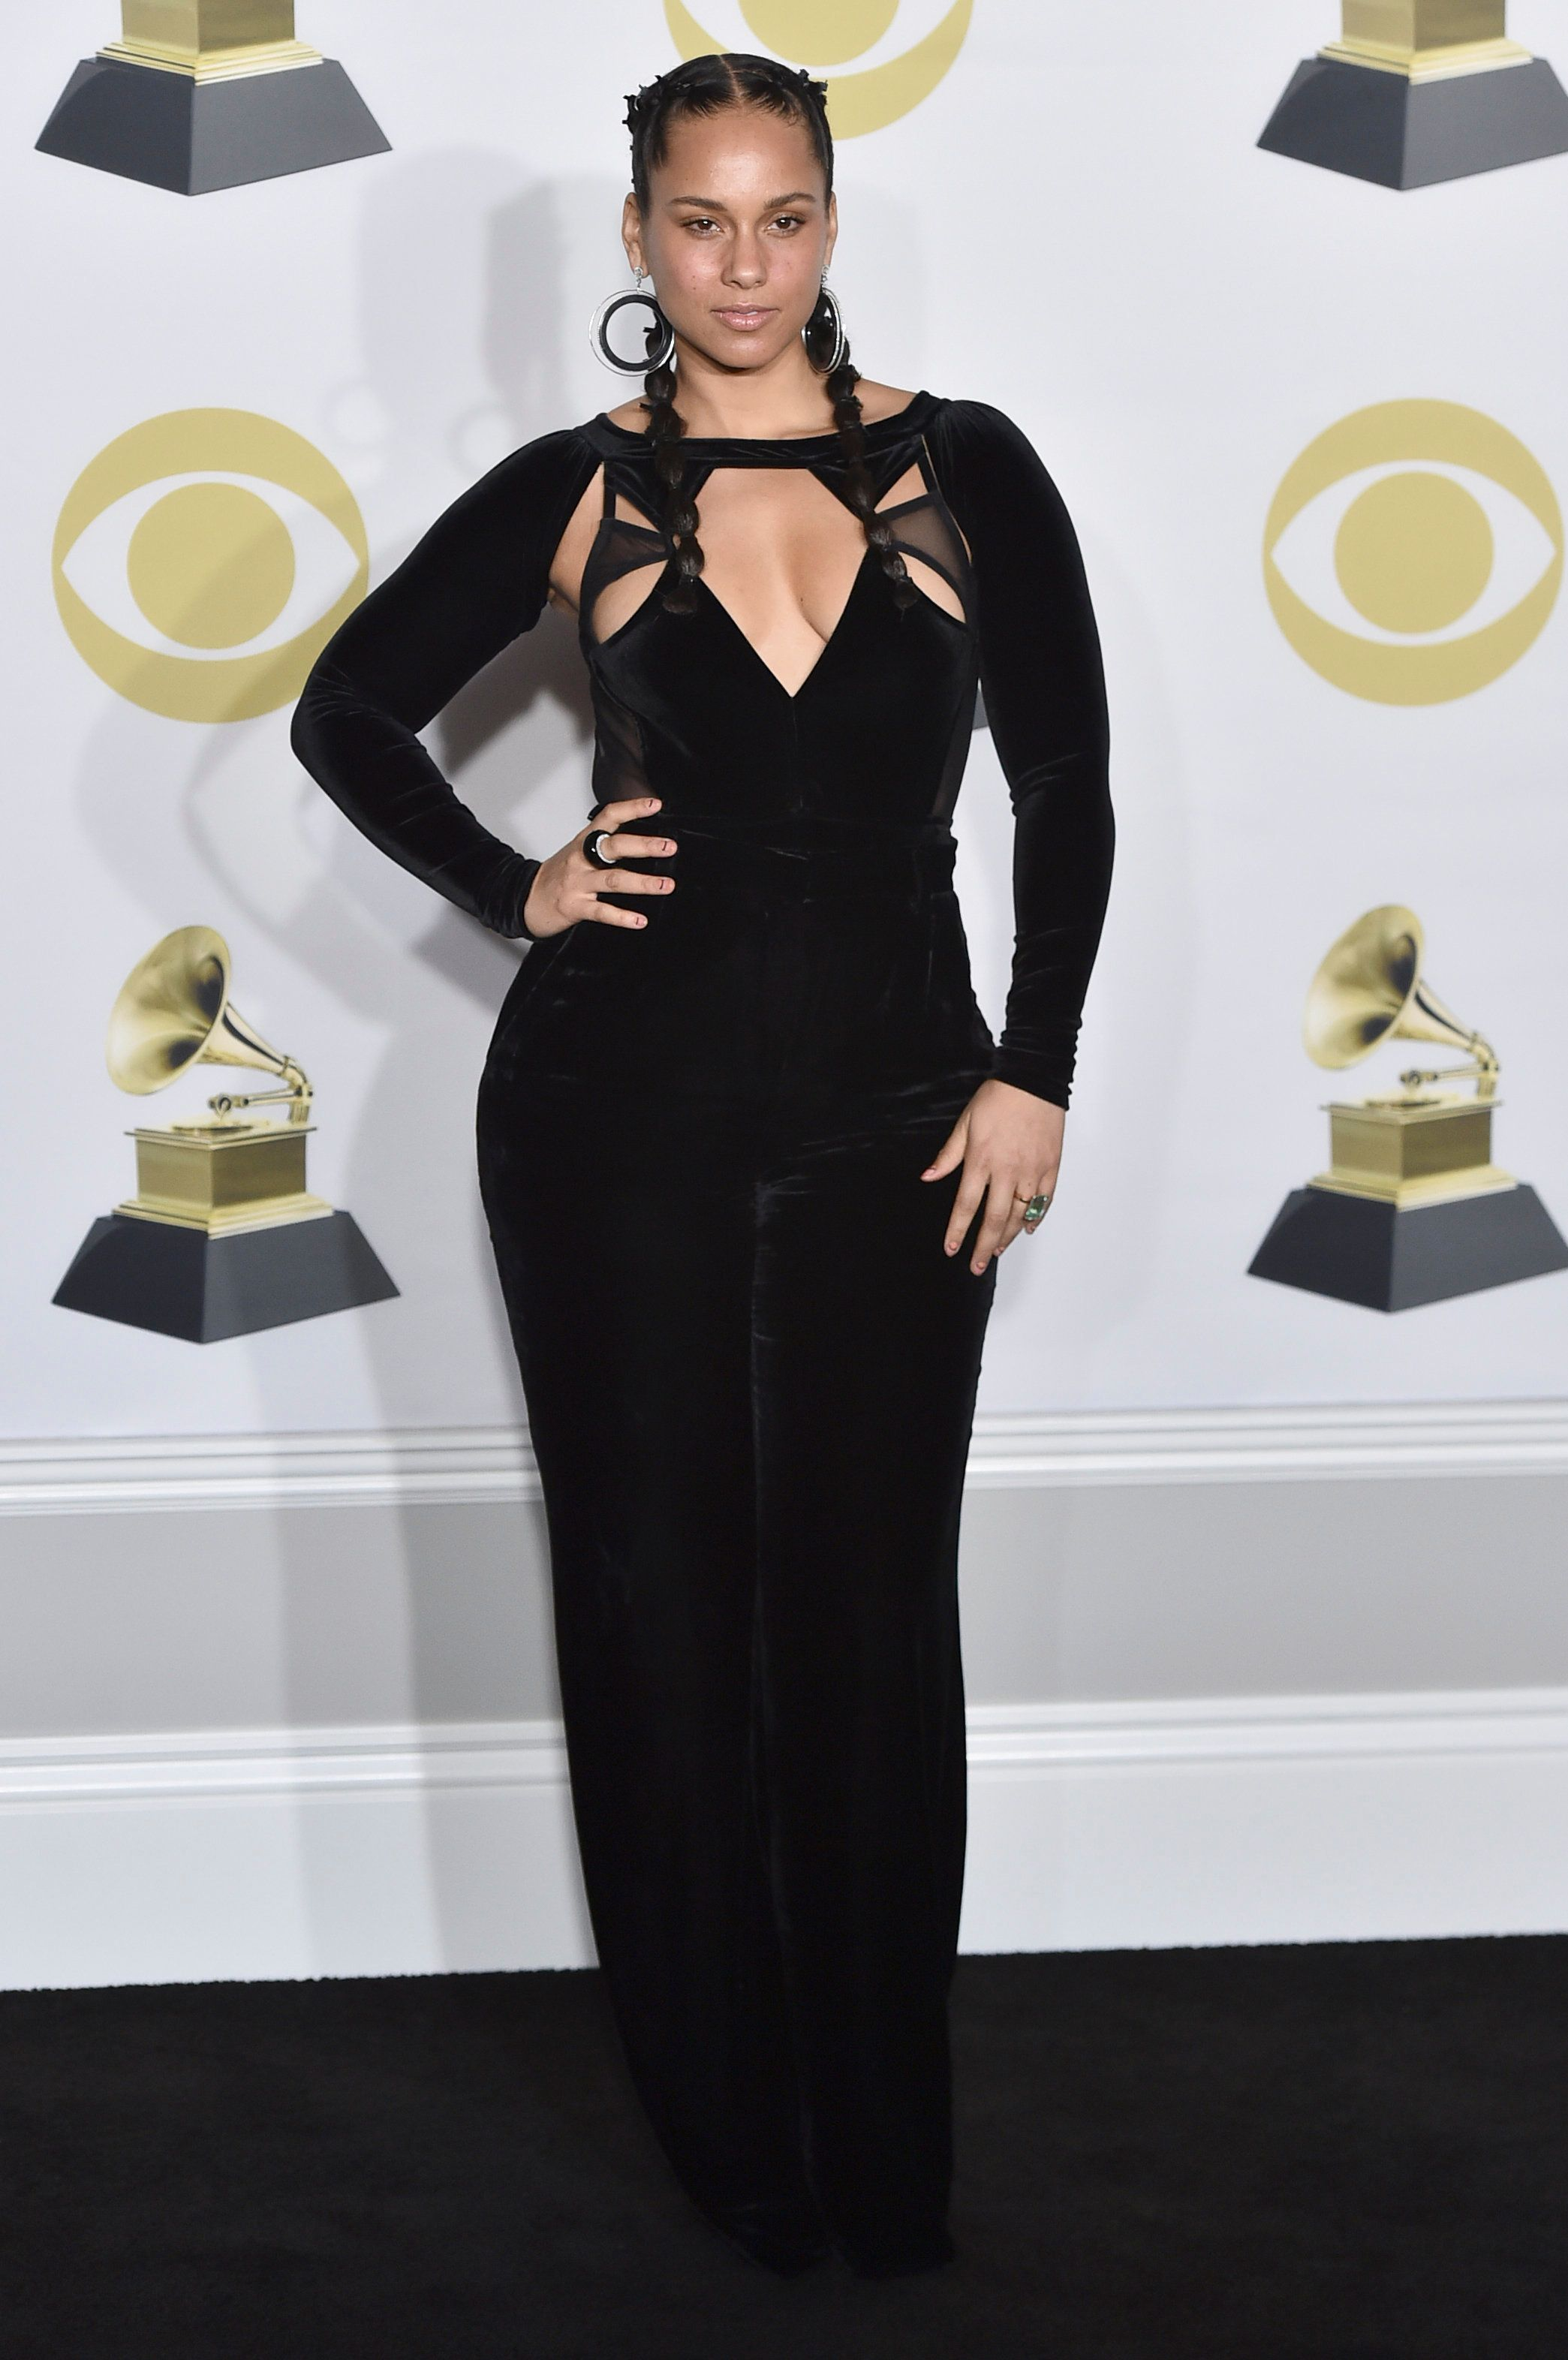 Alicia Keys poses in the press room at the 60th annual Grammy Awards at Madison Square Garden on Sunday, Jan. 28, 2018, in New York. (Photo by Charles Sykes/Invision/AP)